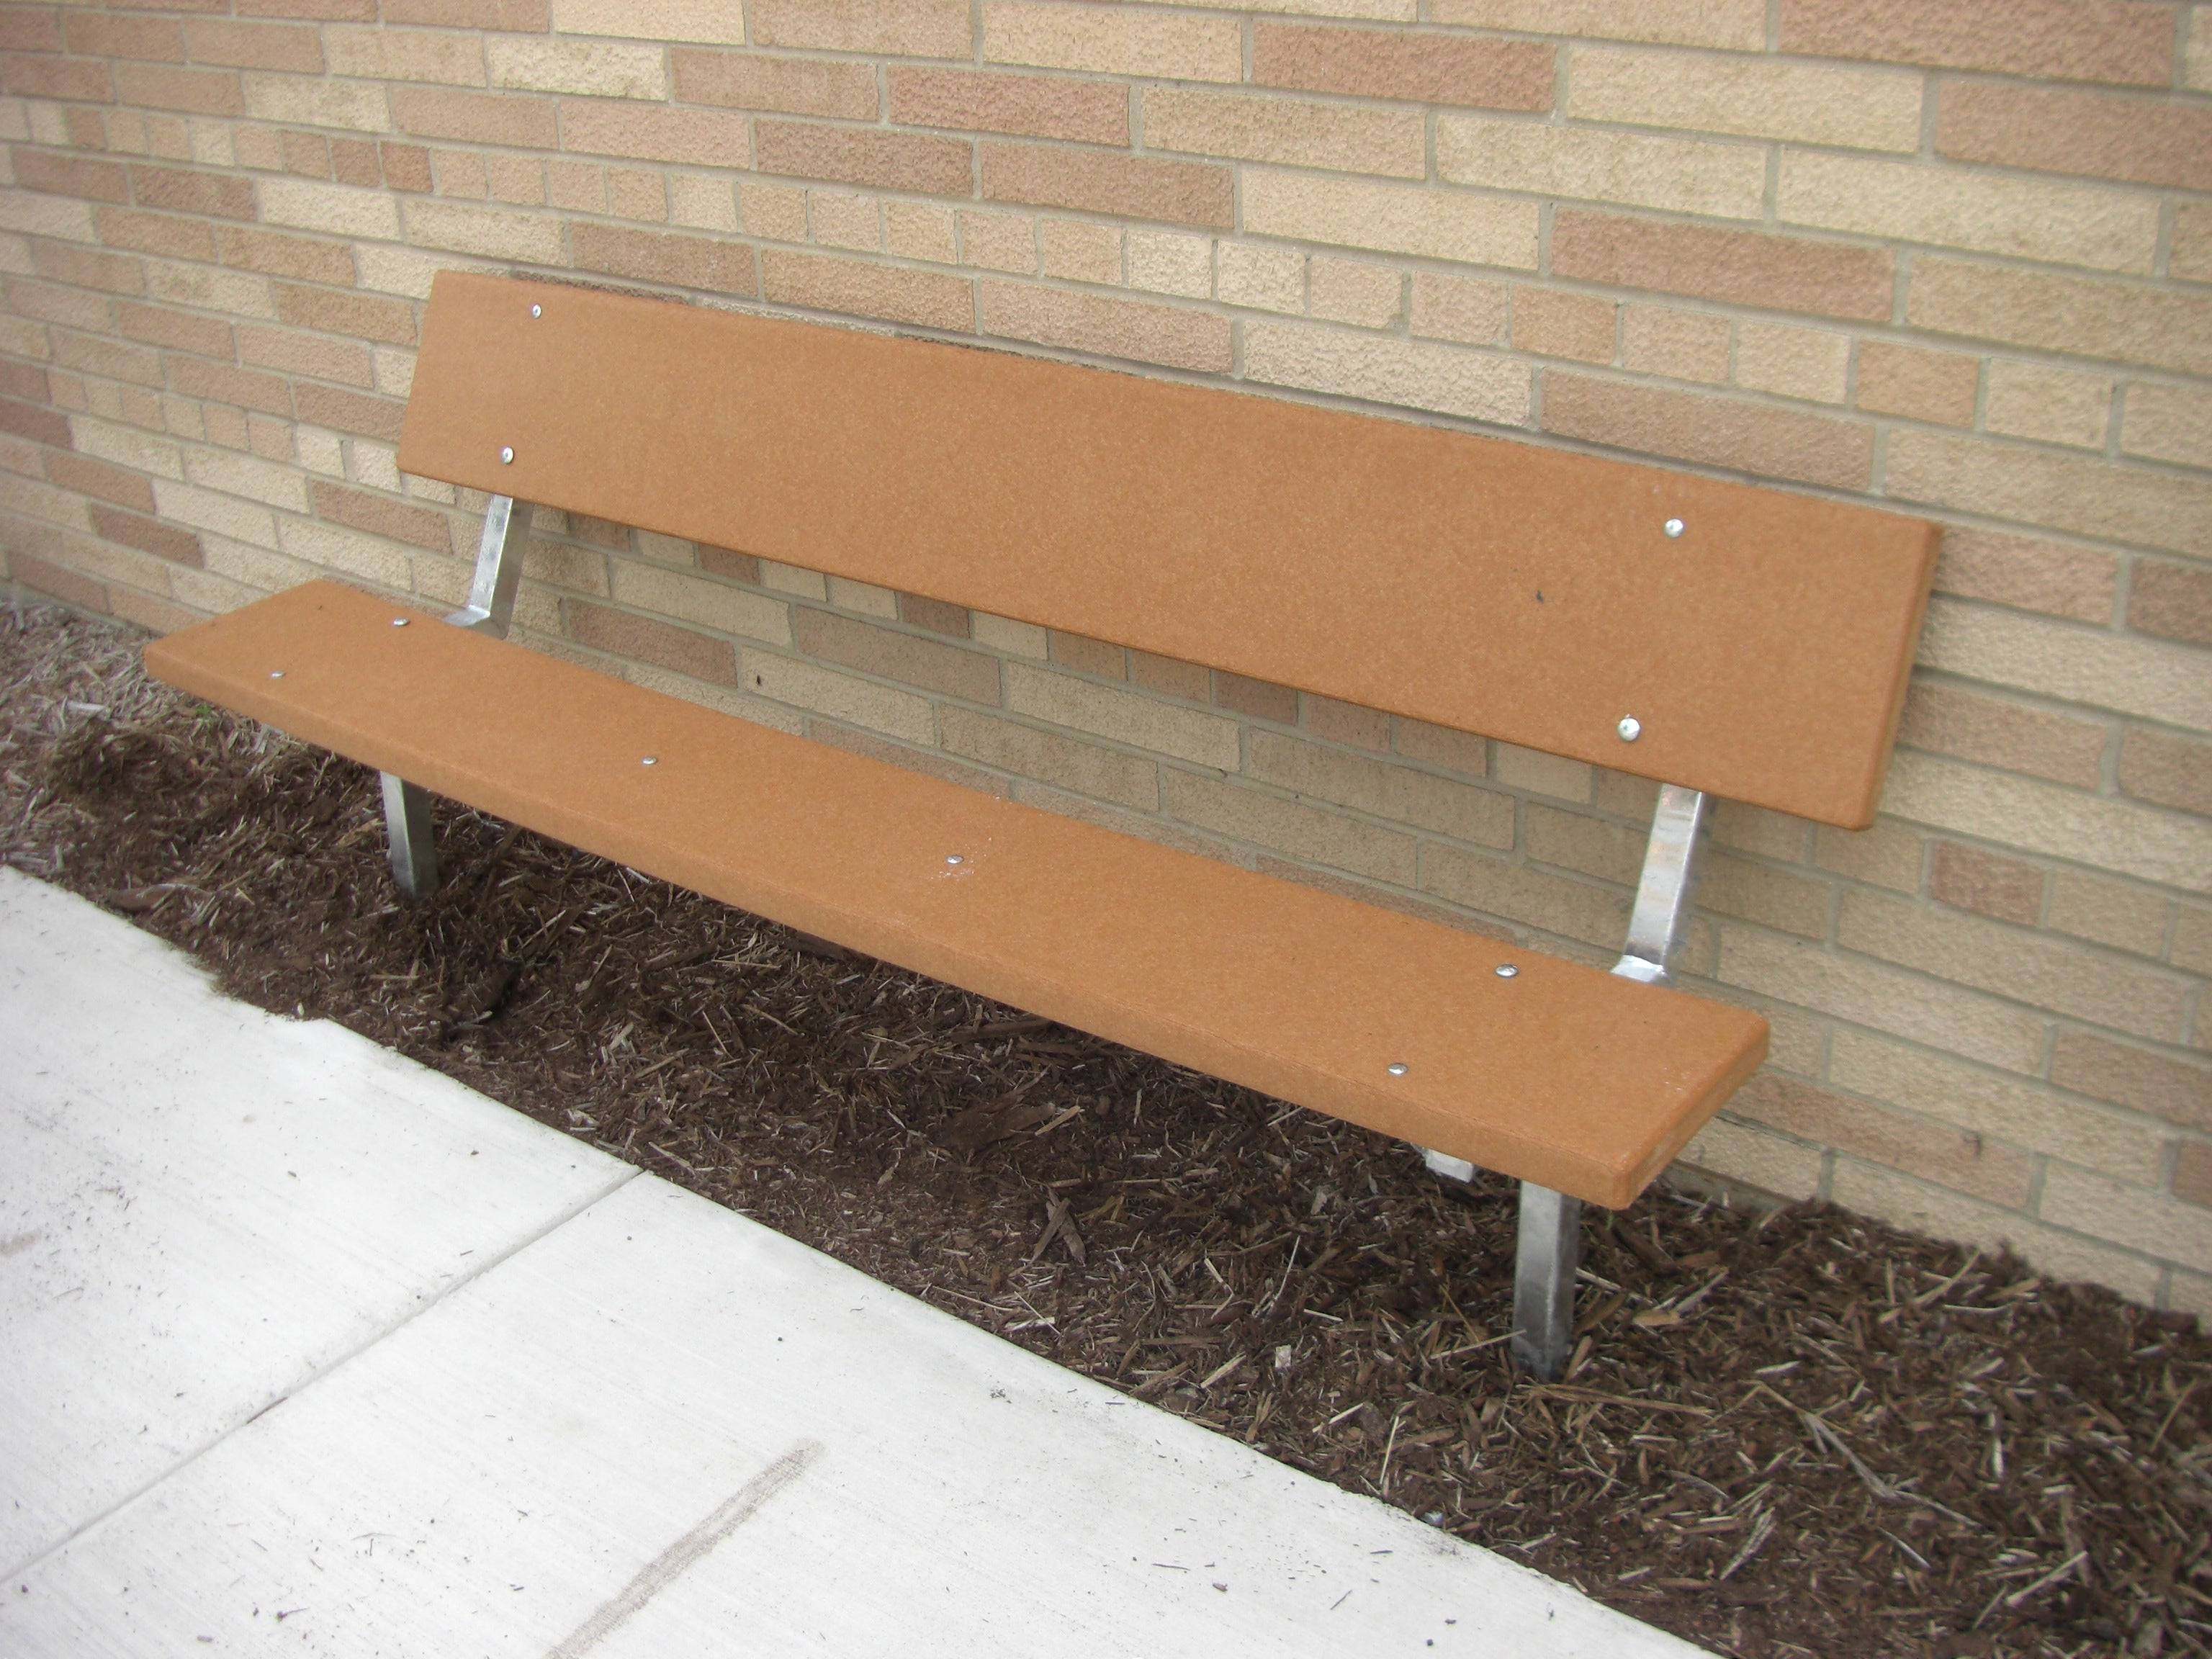 Stationary Heavy Duty Park Bench - RECYCLED PLASTIC Lumber